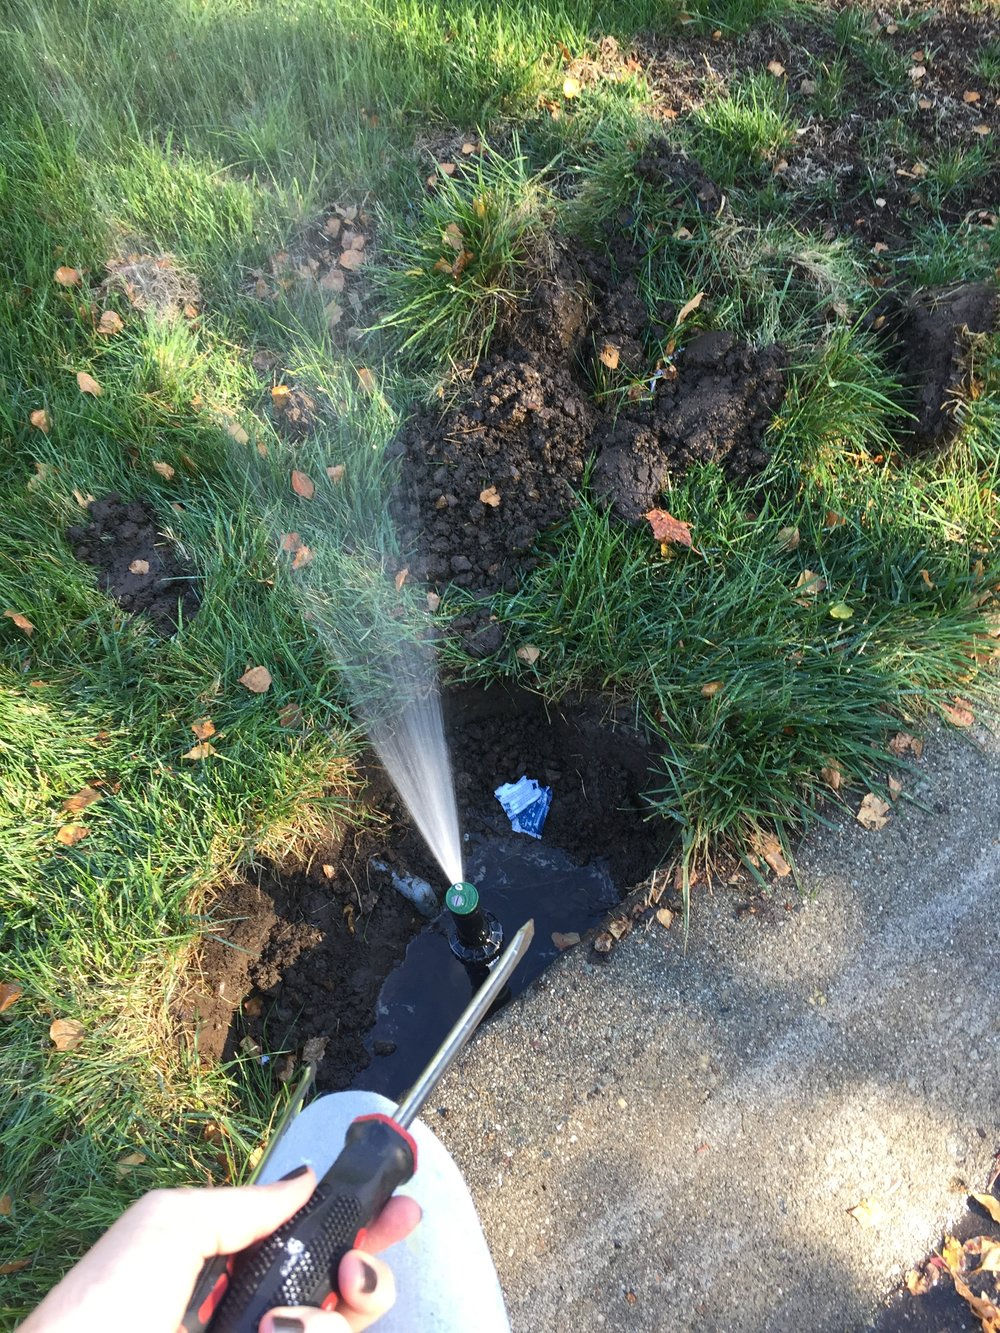 Sprinkler Repair courtesy of youTube, Ace Hardware and ME!